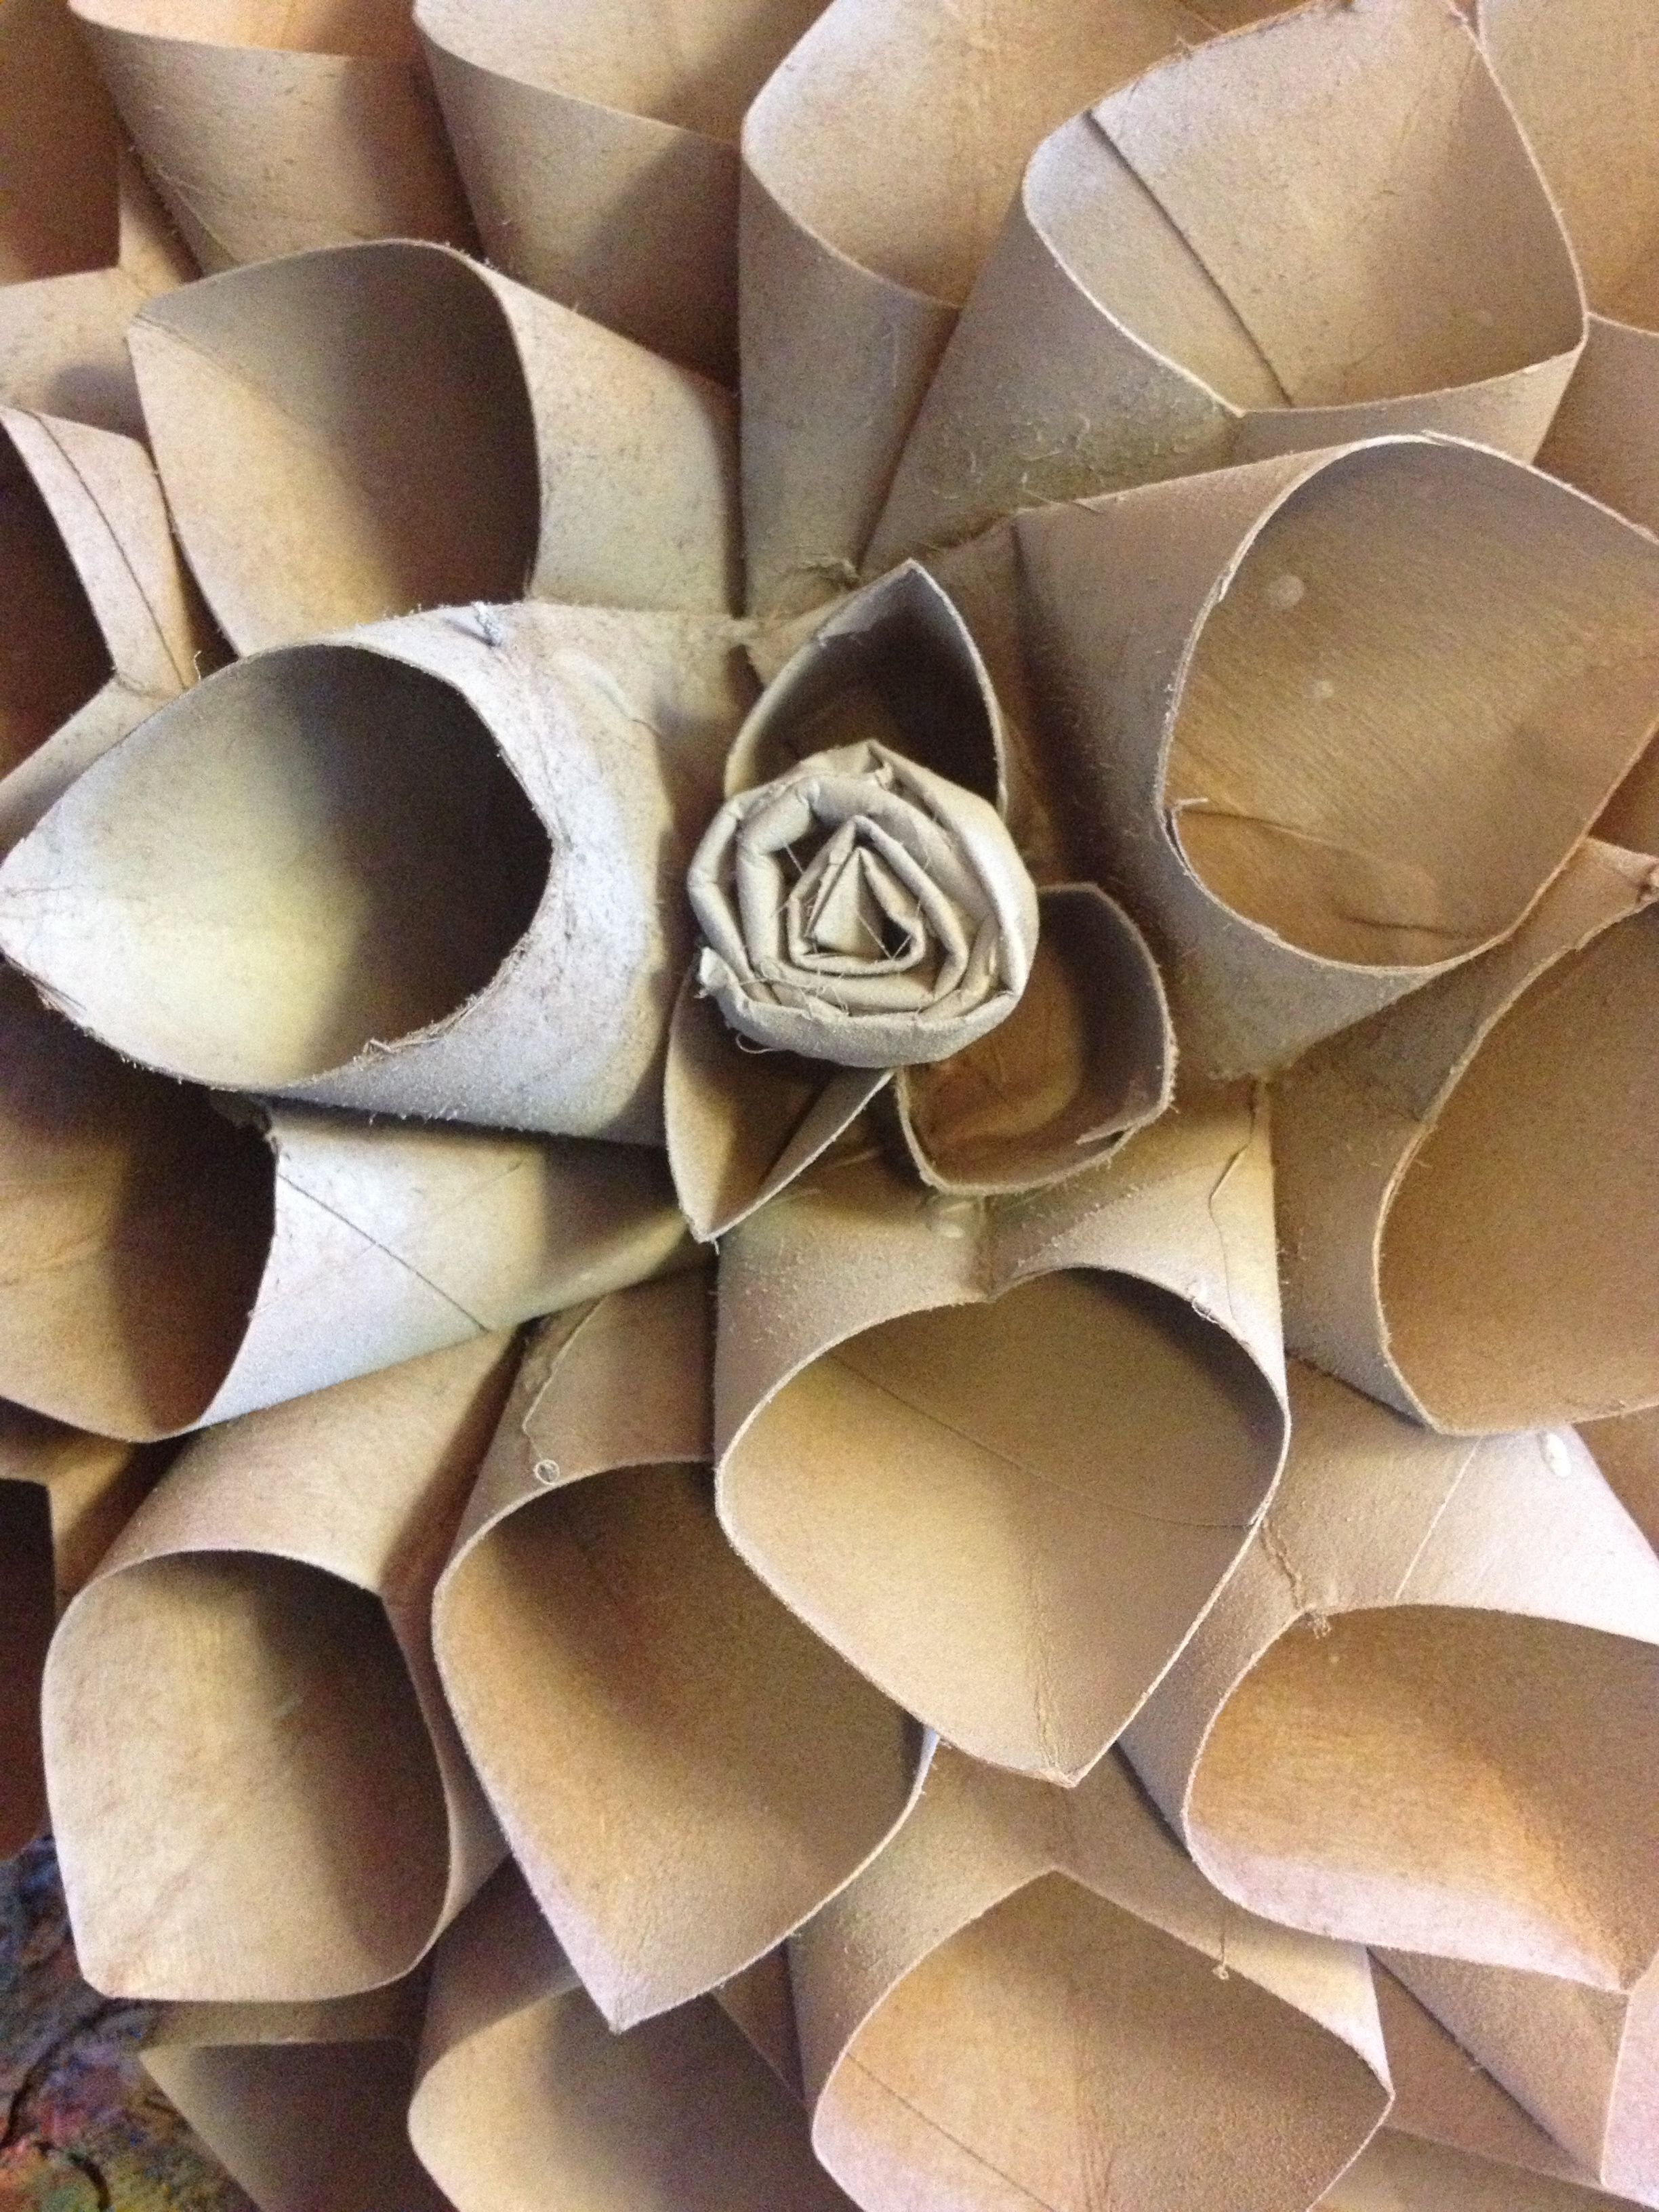 Tp toilet paper rolls to wall art simplecreative me for Toilet paper art ideas